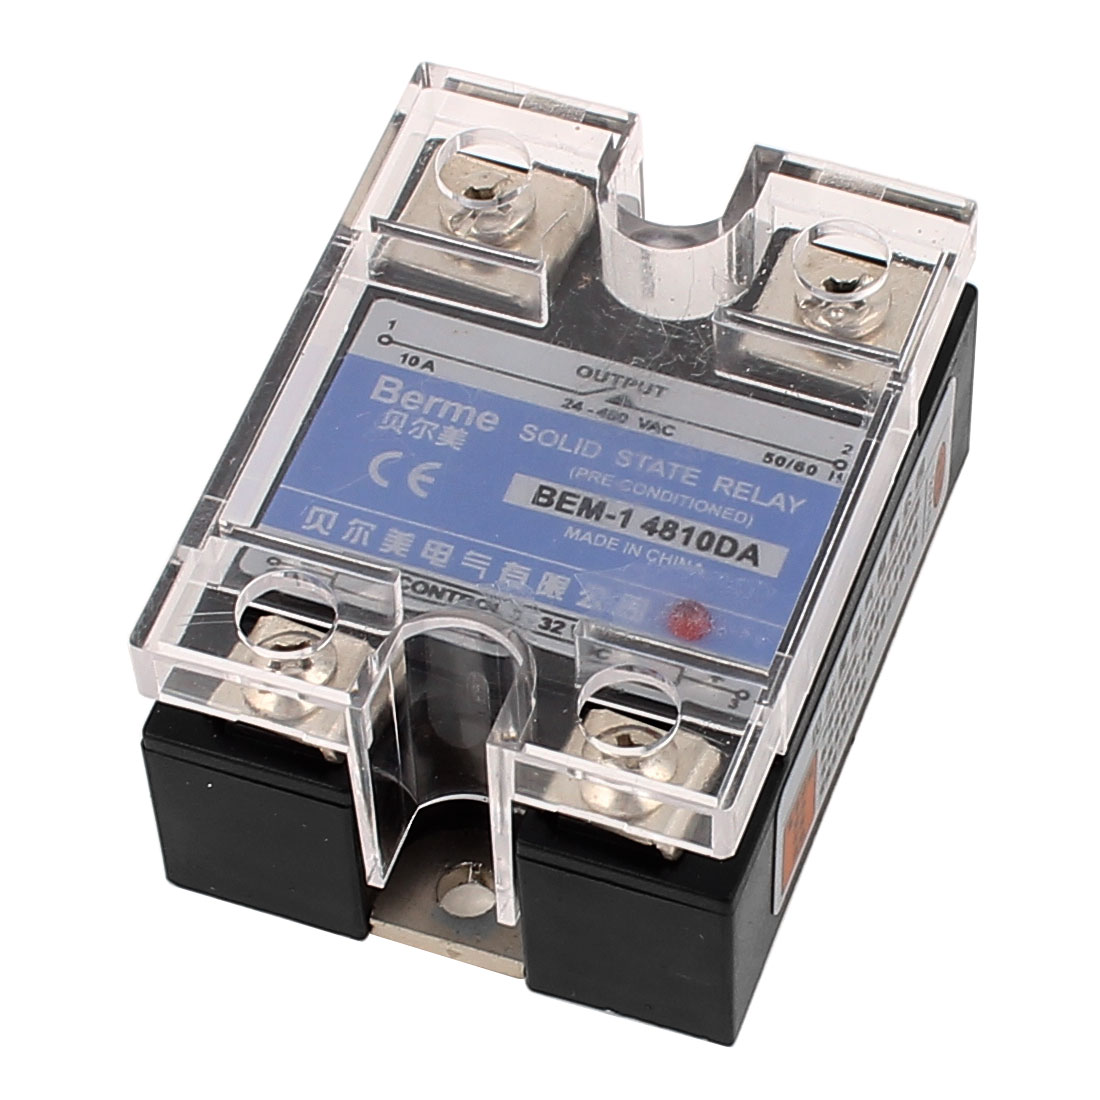 DC-AC 3V-32VDC Input to 24V-480VAC Output 10A Single Phase Solid State Relay